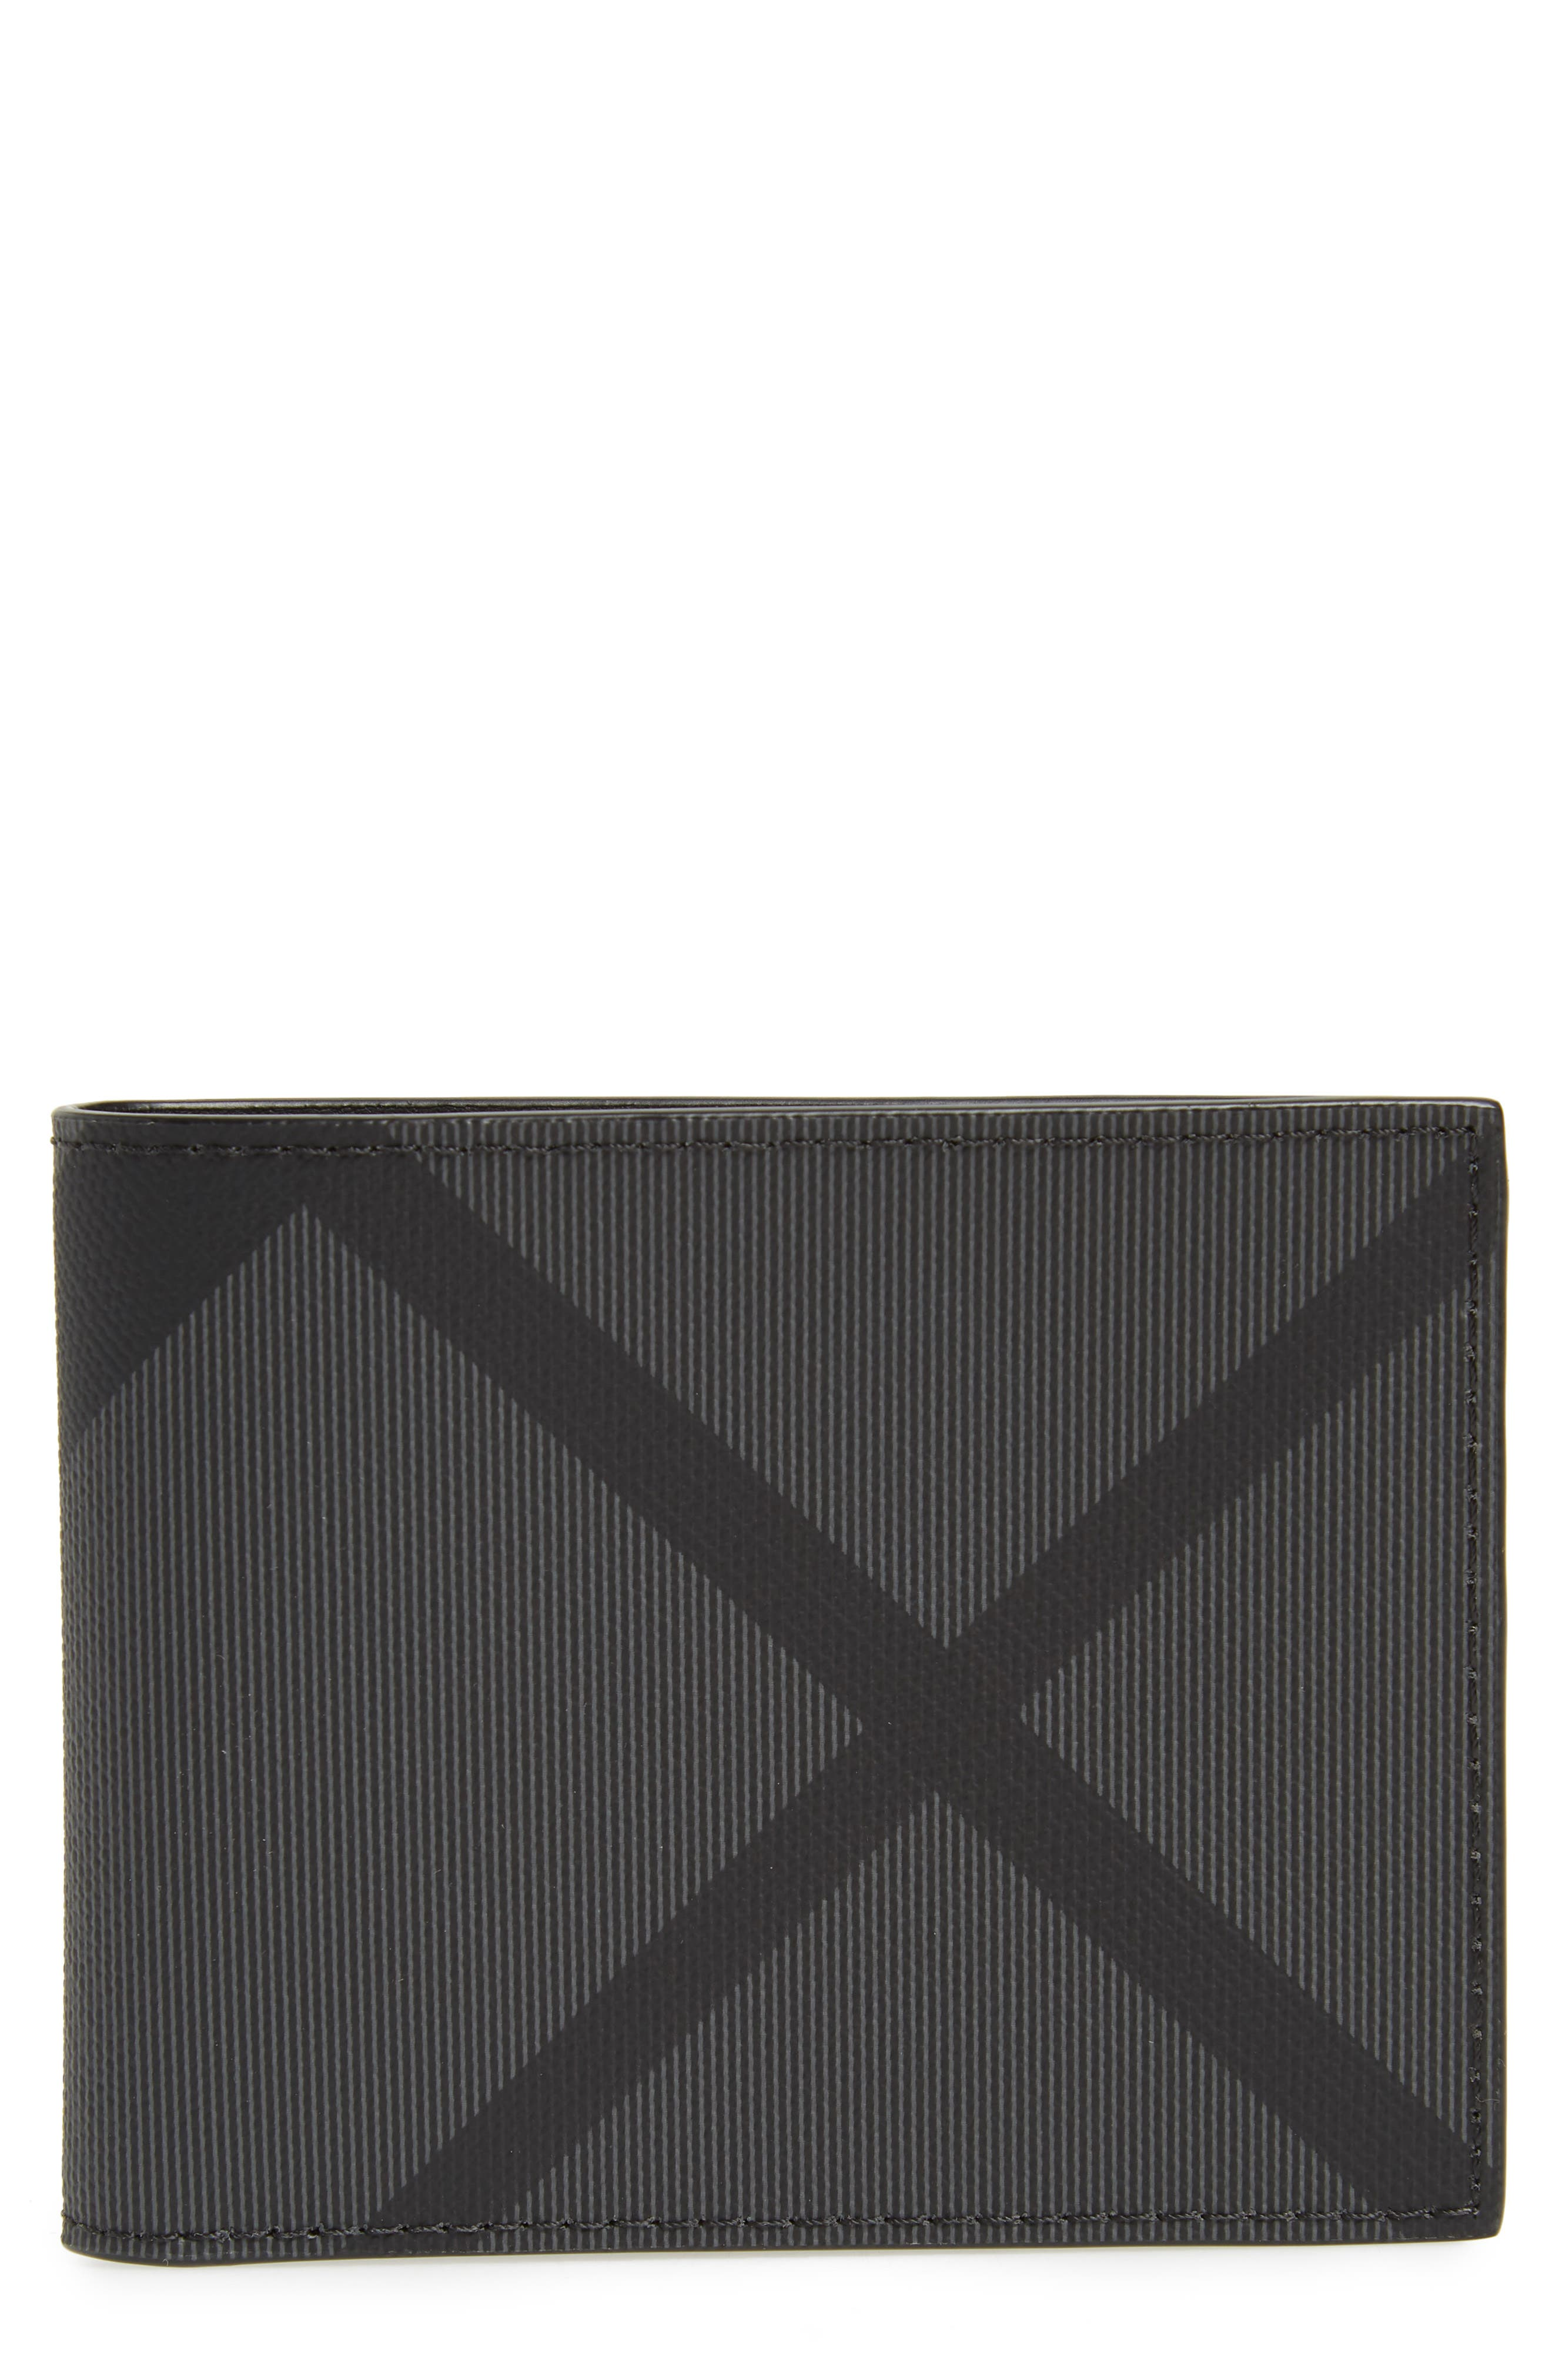 BURBERRY, Check Wallet, Main thumbnail 1, color, 020